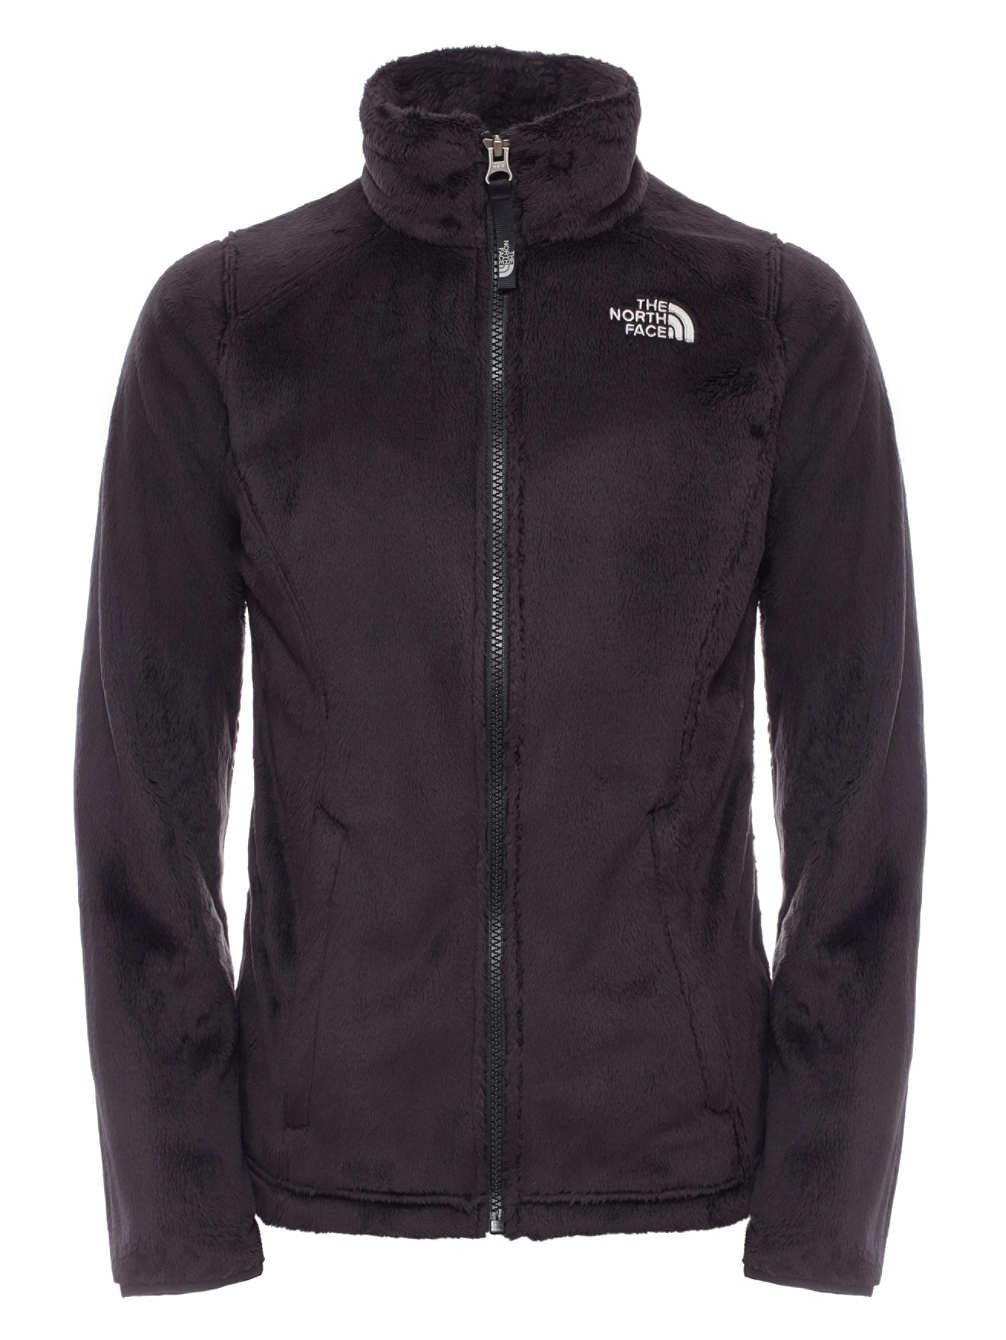 The North Face Kids Girl's Osolita Jacket